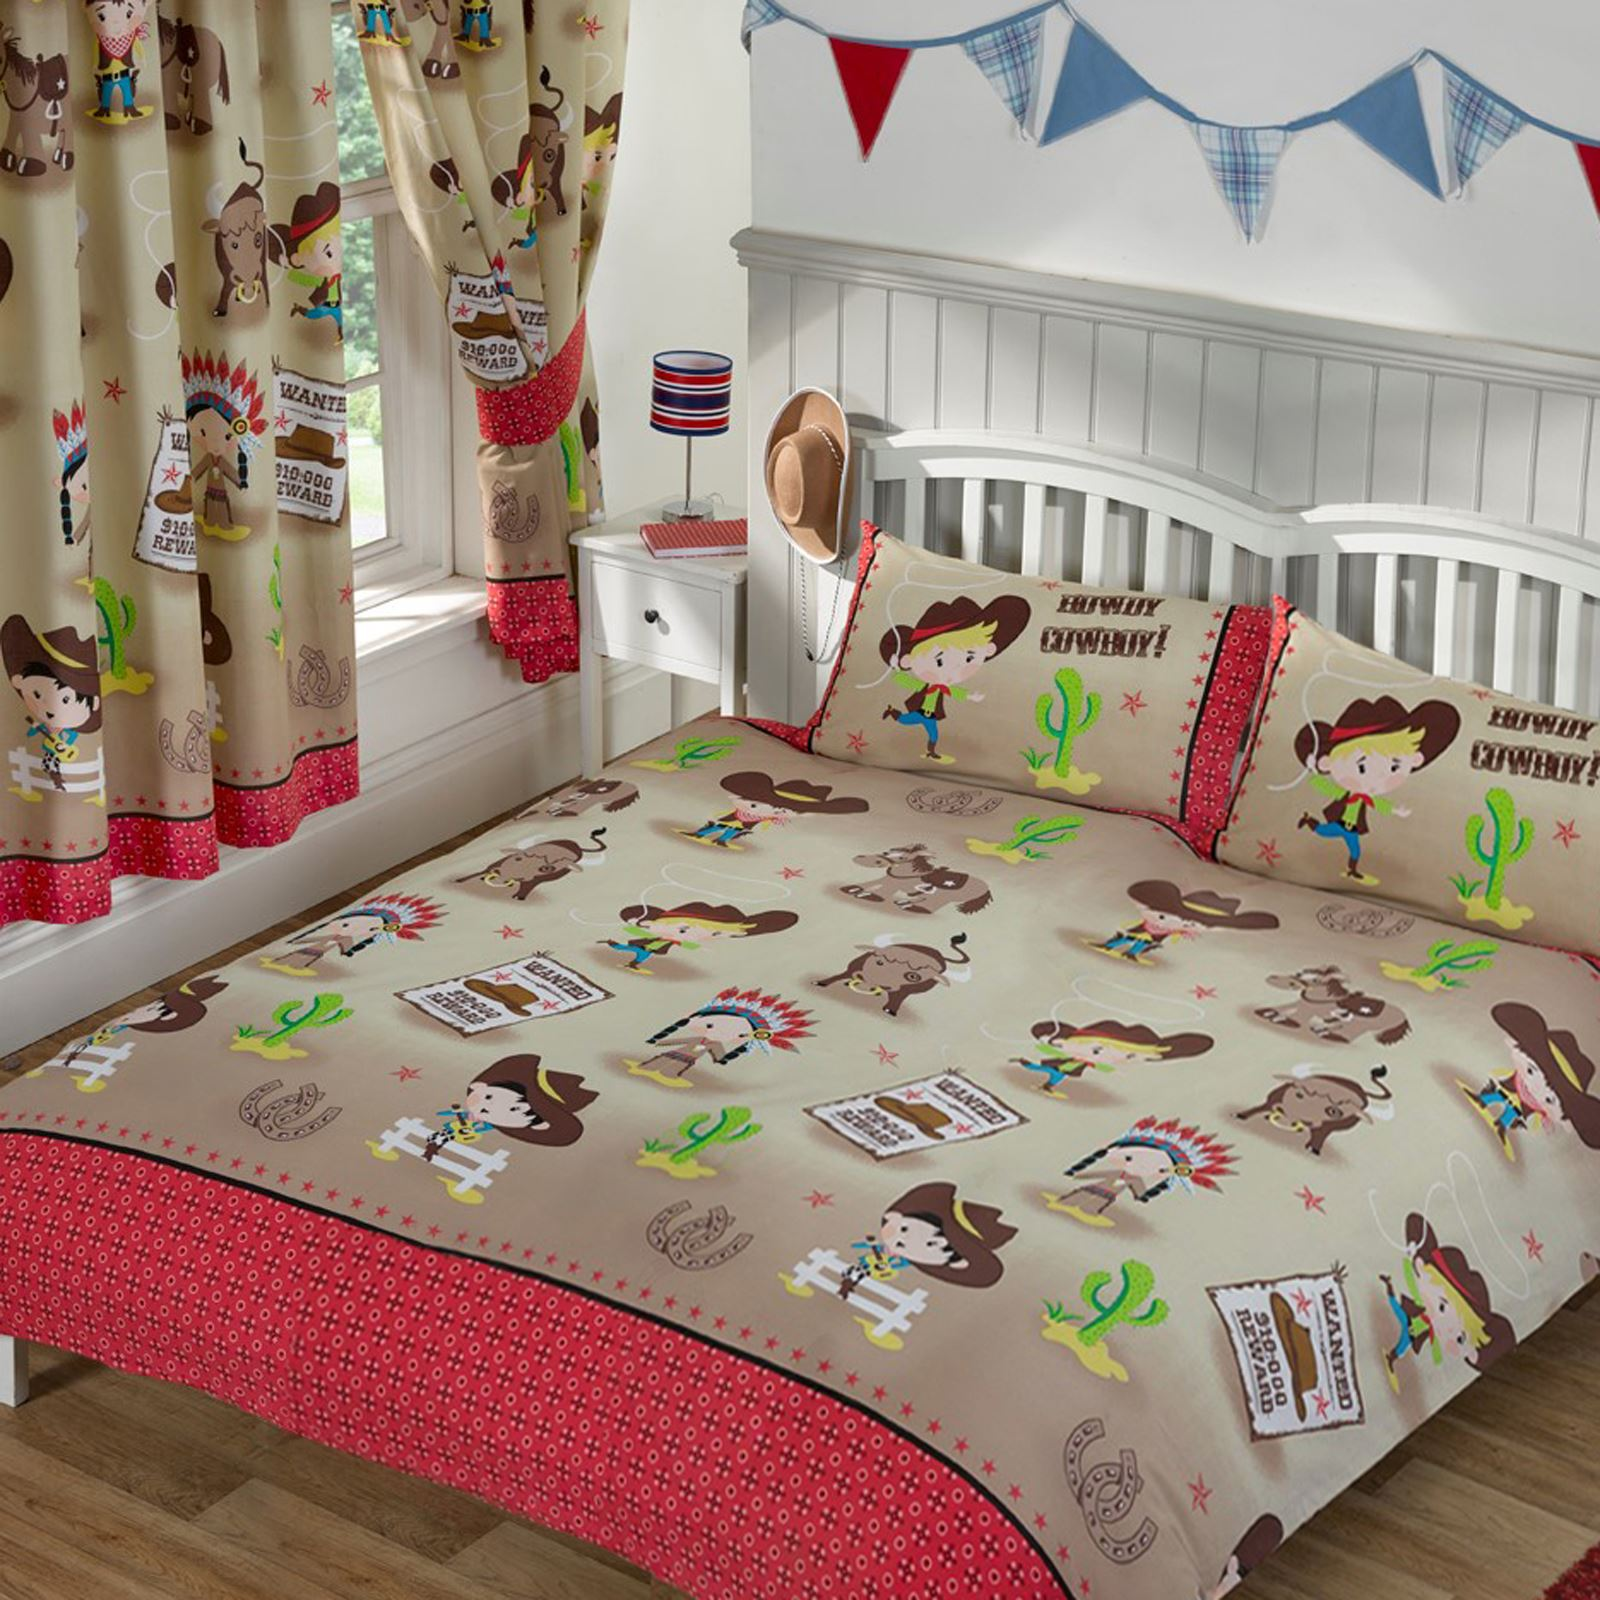 enfants housse de couette double ensembles dinosaures arm e oiseaux licorne ebay. Black Bedroom Furniture Sets. Home Design Ideas